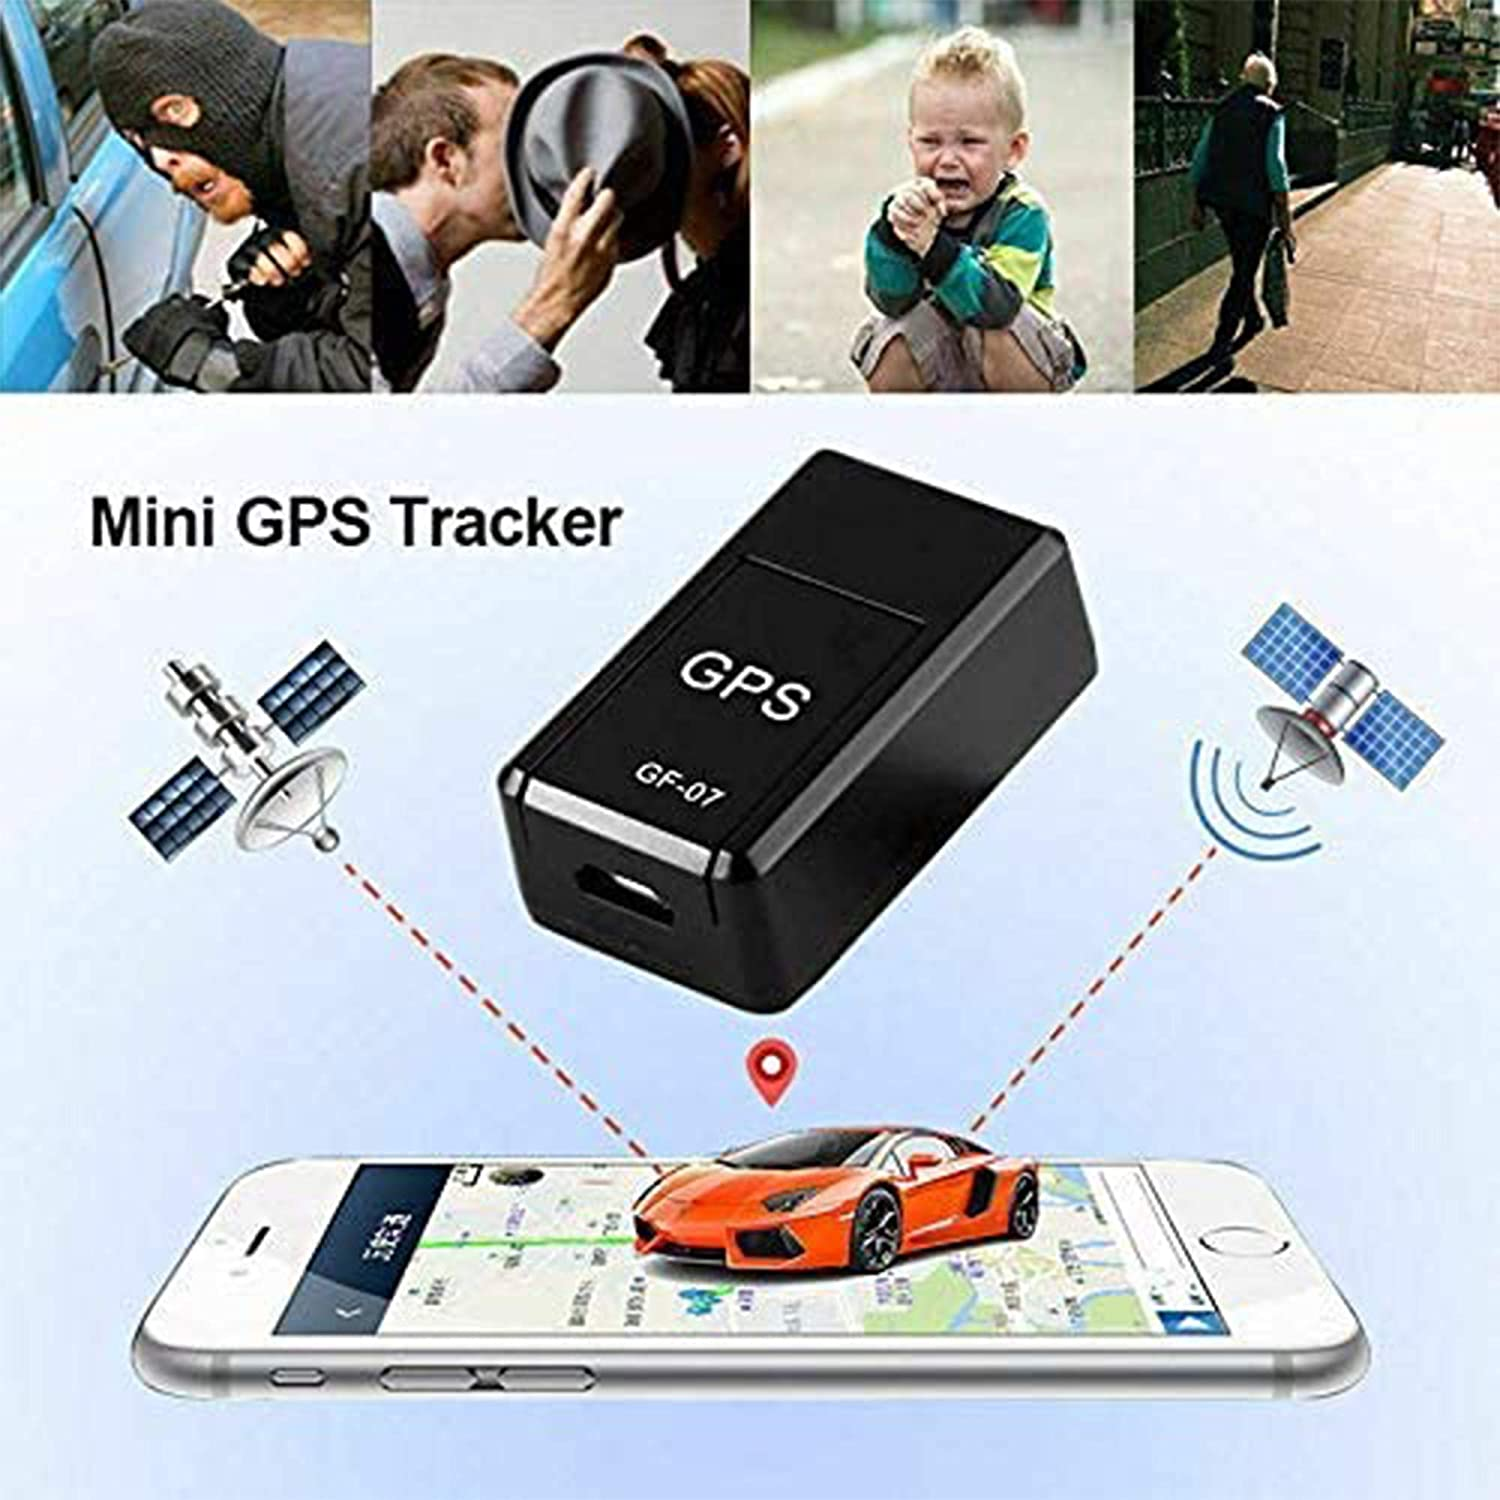 Employees Elderly Hidden Car Tracker with Audio Listening for Covert Monitoring of Teen Drivers Kids Assets 2020 Upgrade Magnetic Mini GPS Locator-ai Intelligent Noise Reduction